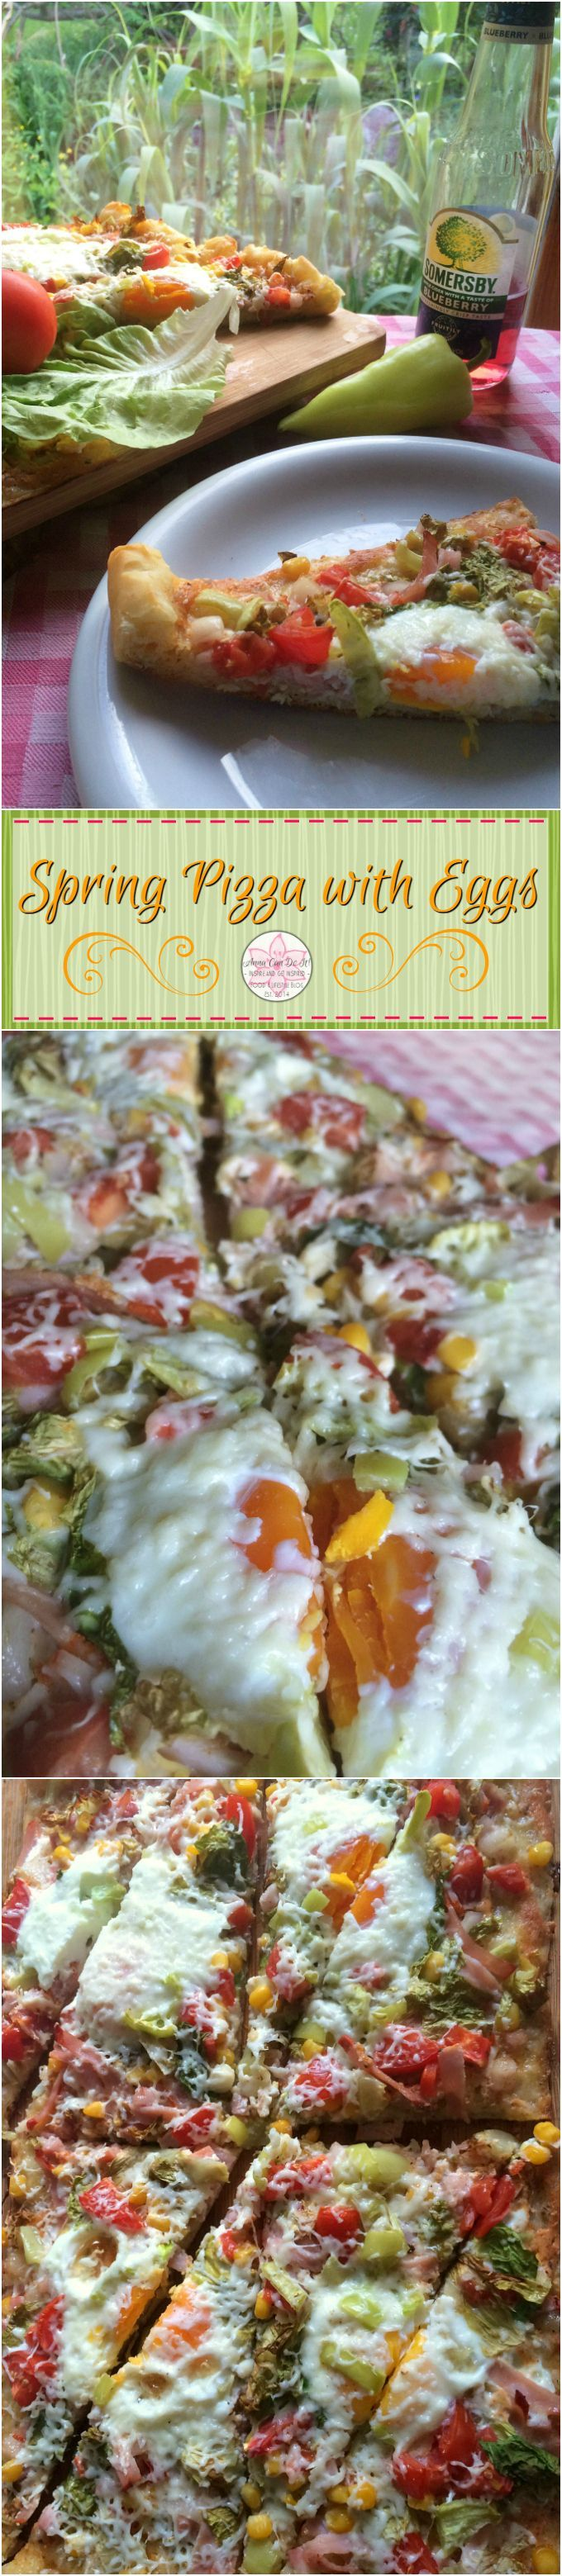 Spring Pizza with Eggs - Anna Can Do It! * The spring salad inspired Spring Pizza with Eggs is so filling, fresh, full of flavors, topped with eggs; it's versatile, perfect for a weekend brunch, a busy week day dinner, even for an office lunch!